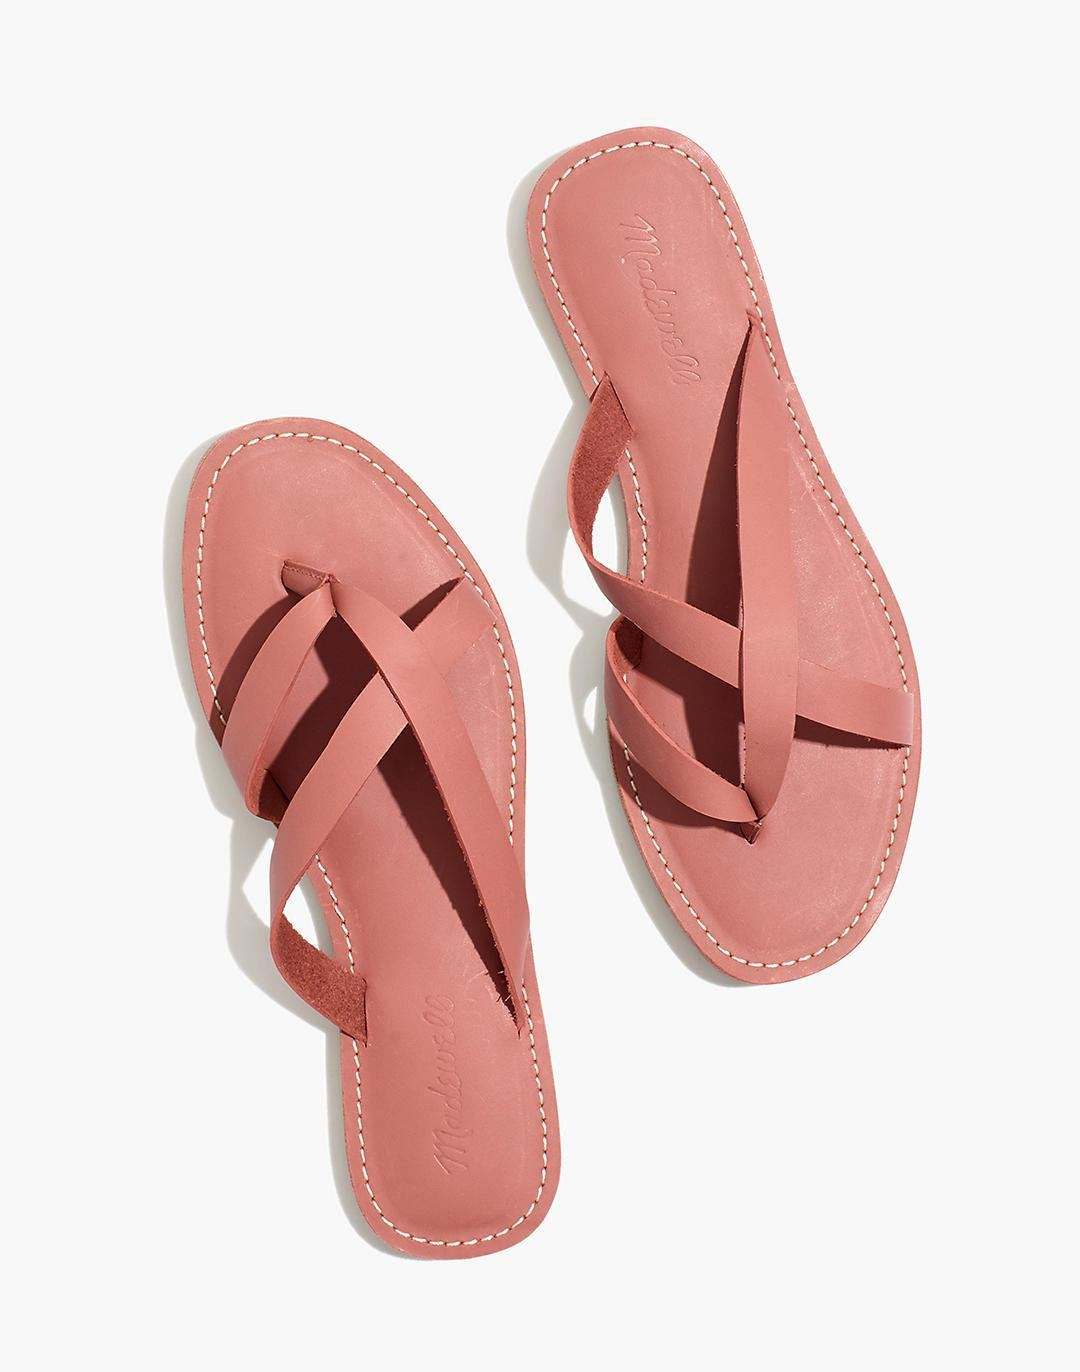 The Boardwalk Thong Sandal in Leather